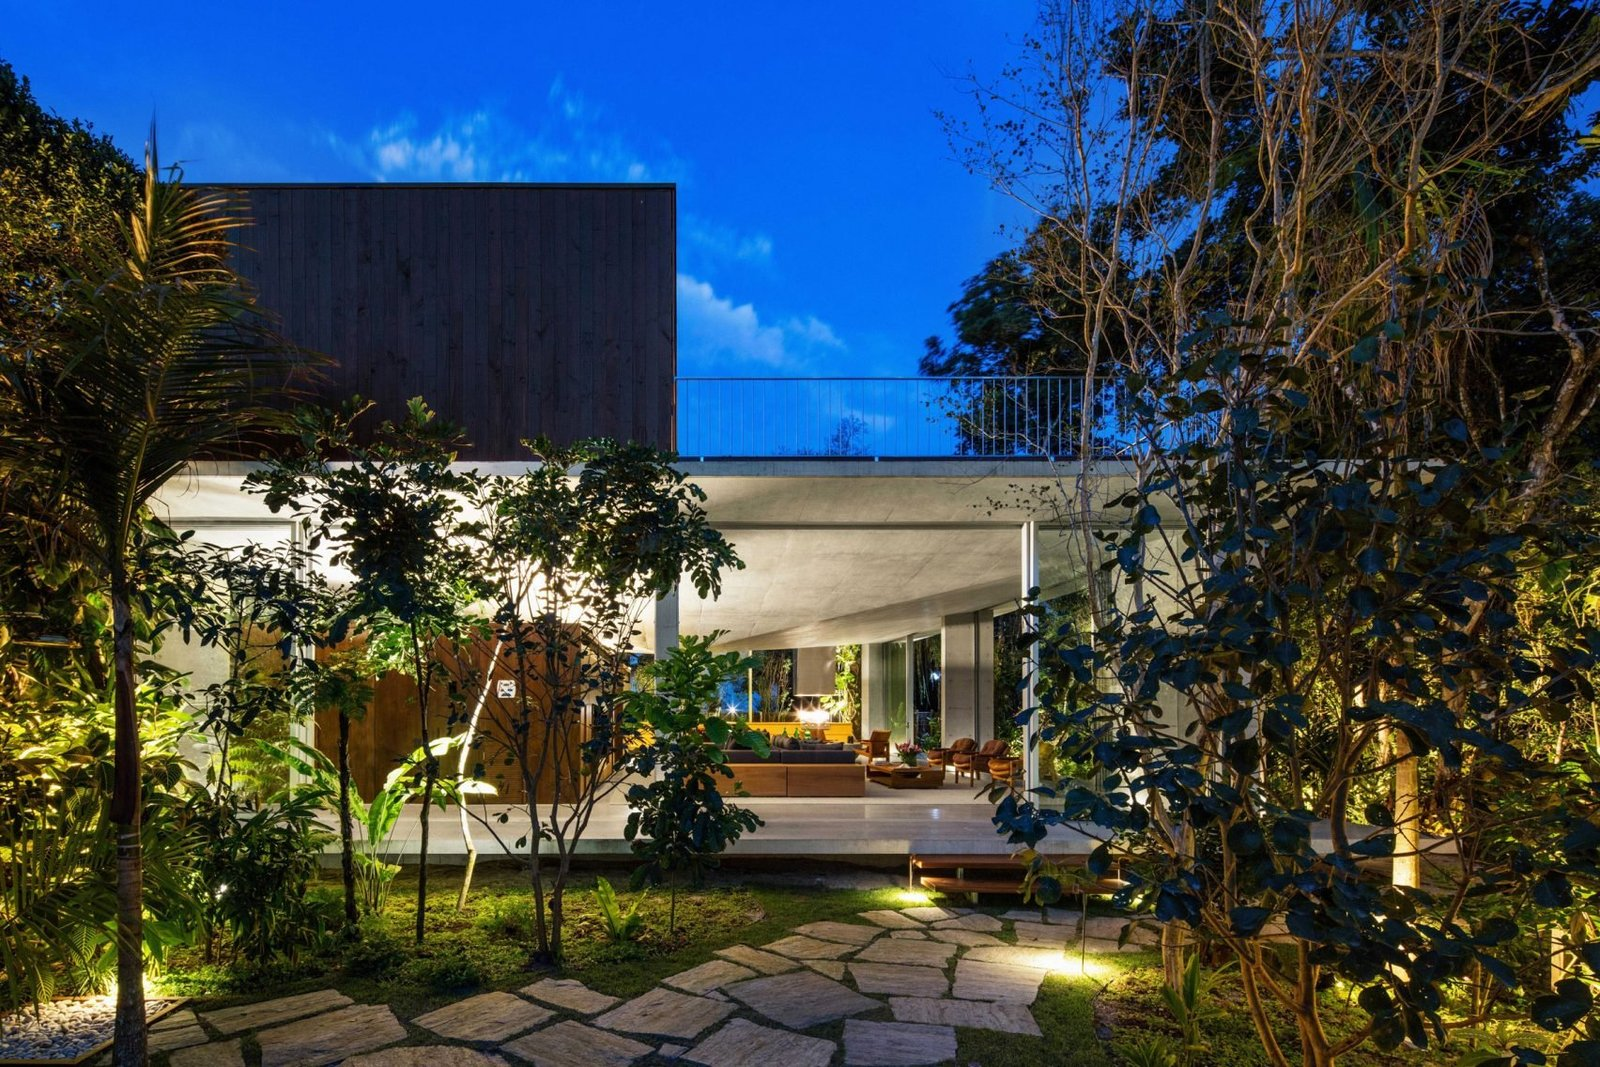 Outdoor, Front Yard, Trees, Walkways, and Hardscapes  Best Outdoor Front Yard Walkways Photos from A Concrete Home in Brazil Lets the Owners Practically Live in the Jungle